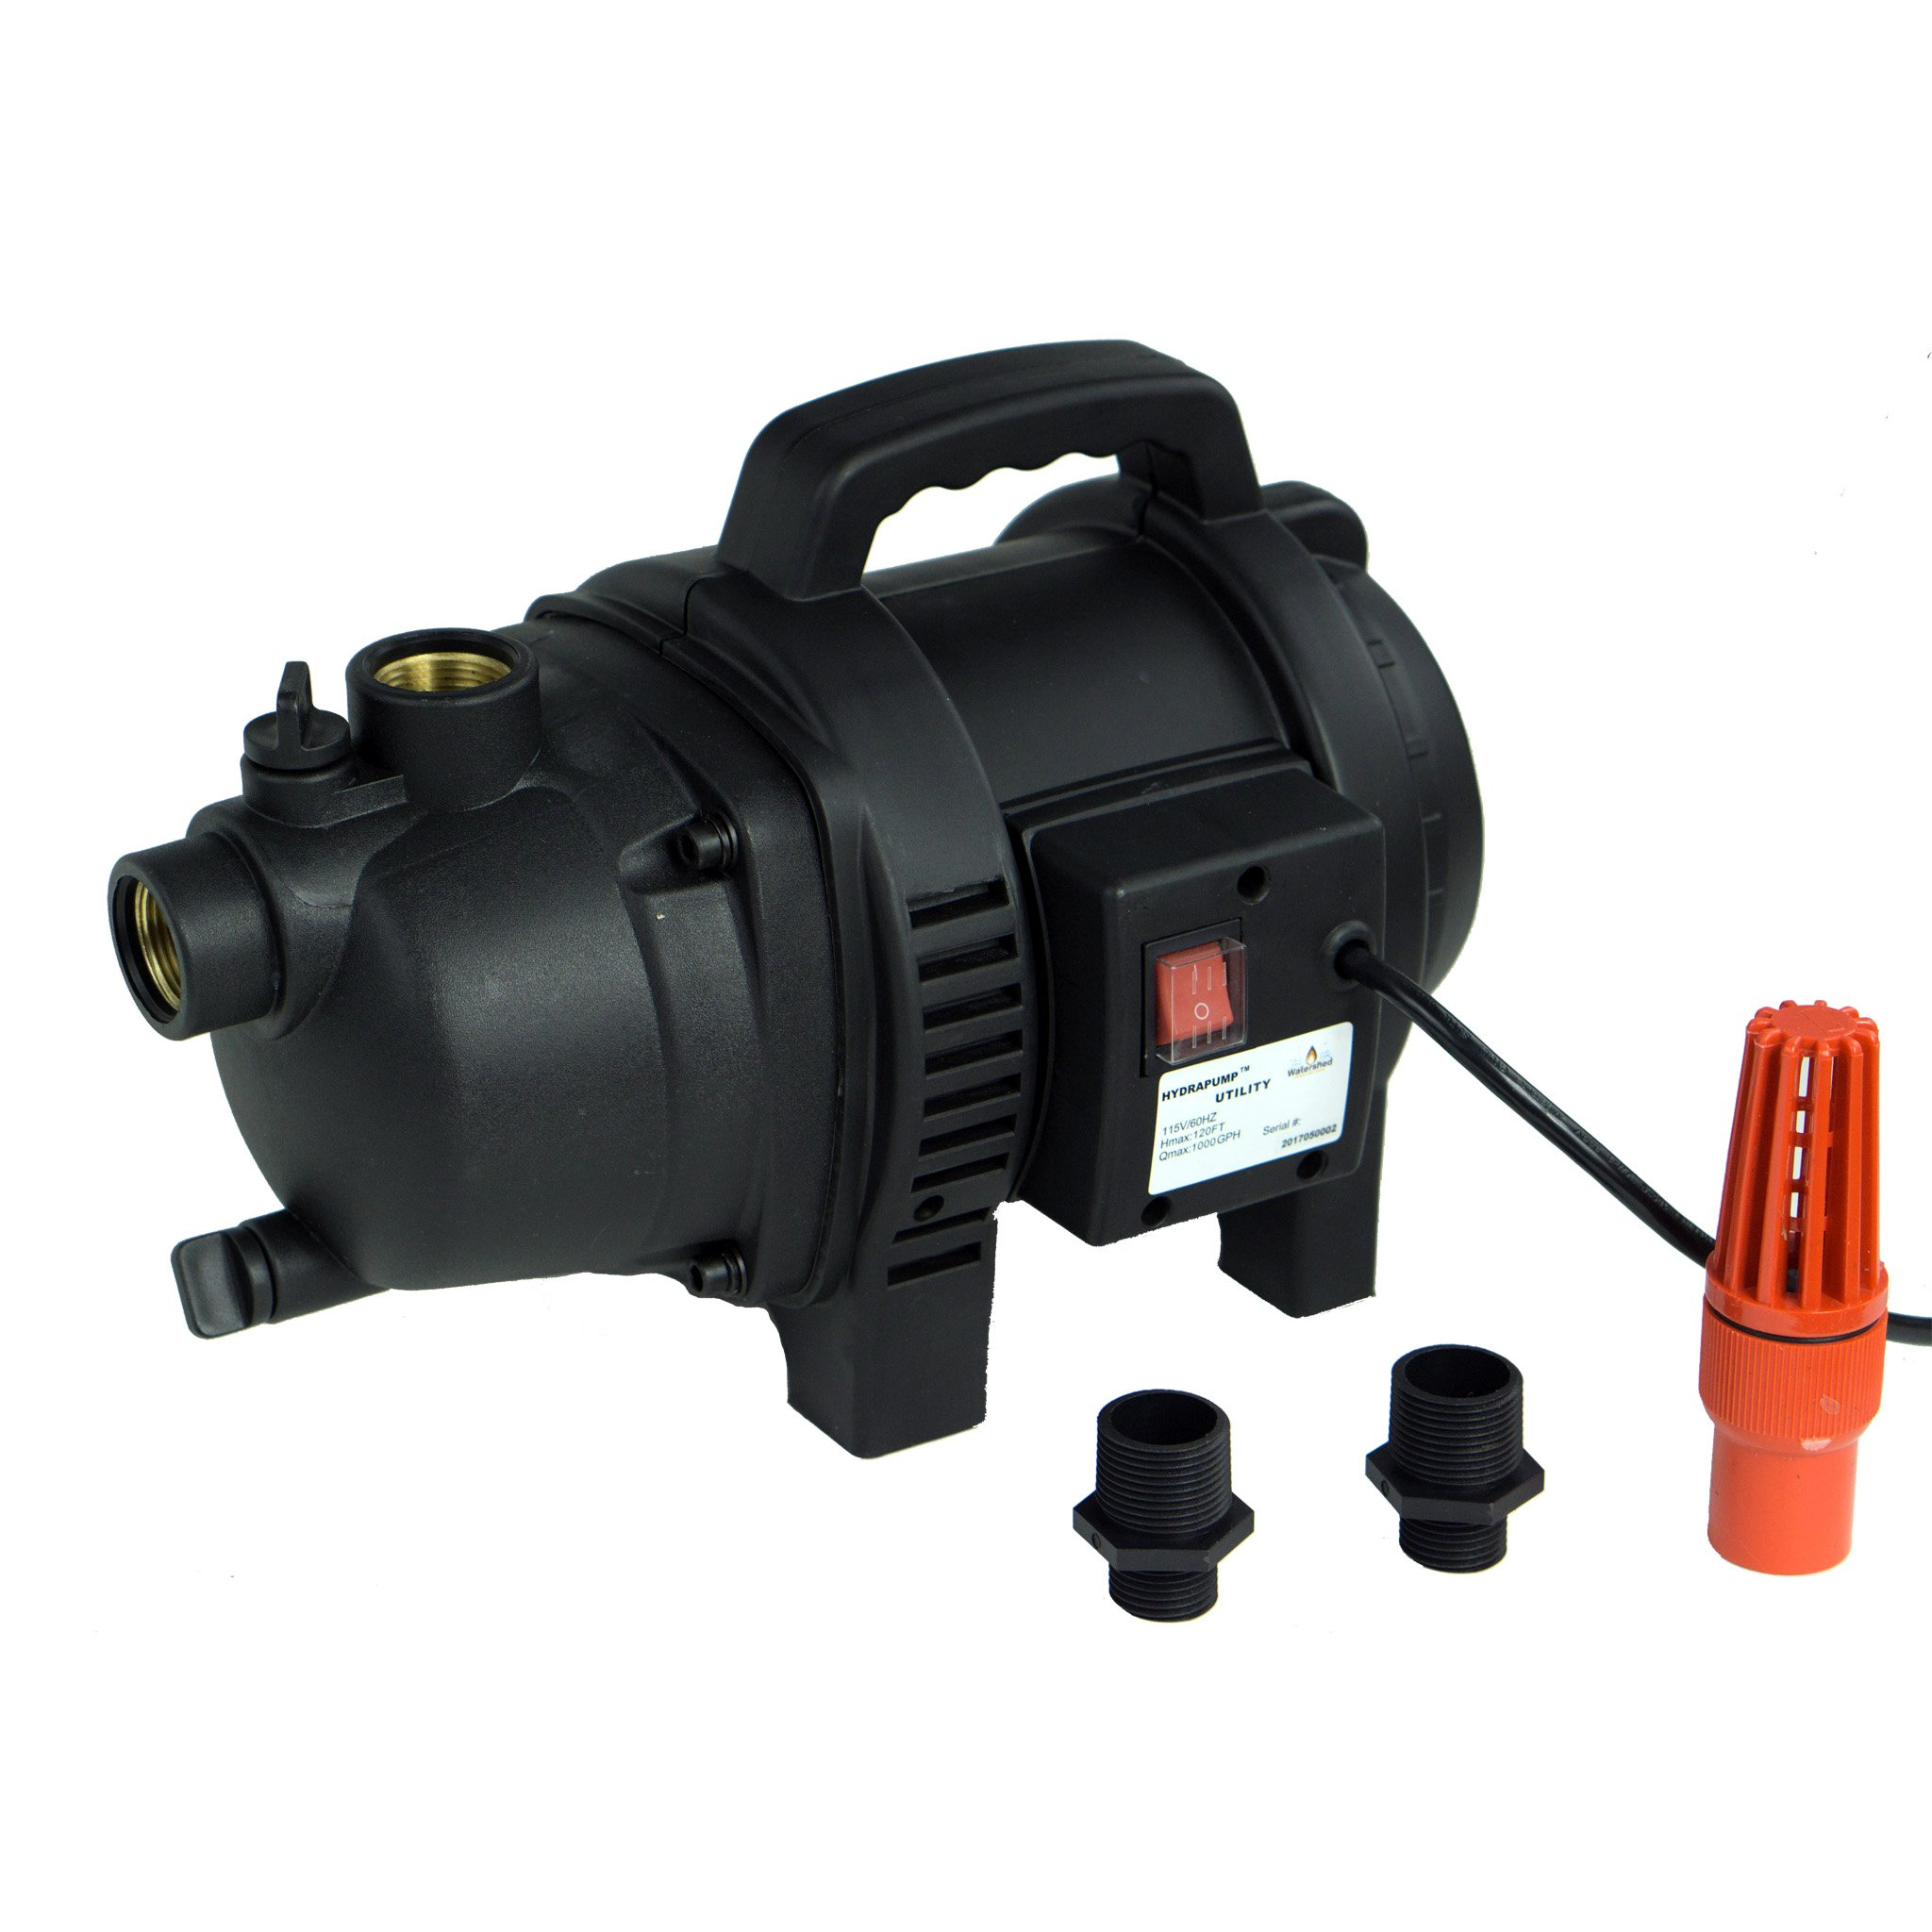 HydraPump Utility – 120V 1HP 1,000 GPH Powerful and Lightweight Utility Water Pump with Two 3/4'' Garden Hose Adapters and Bonus foot Valve